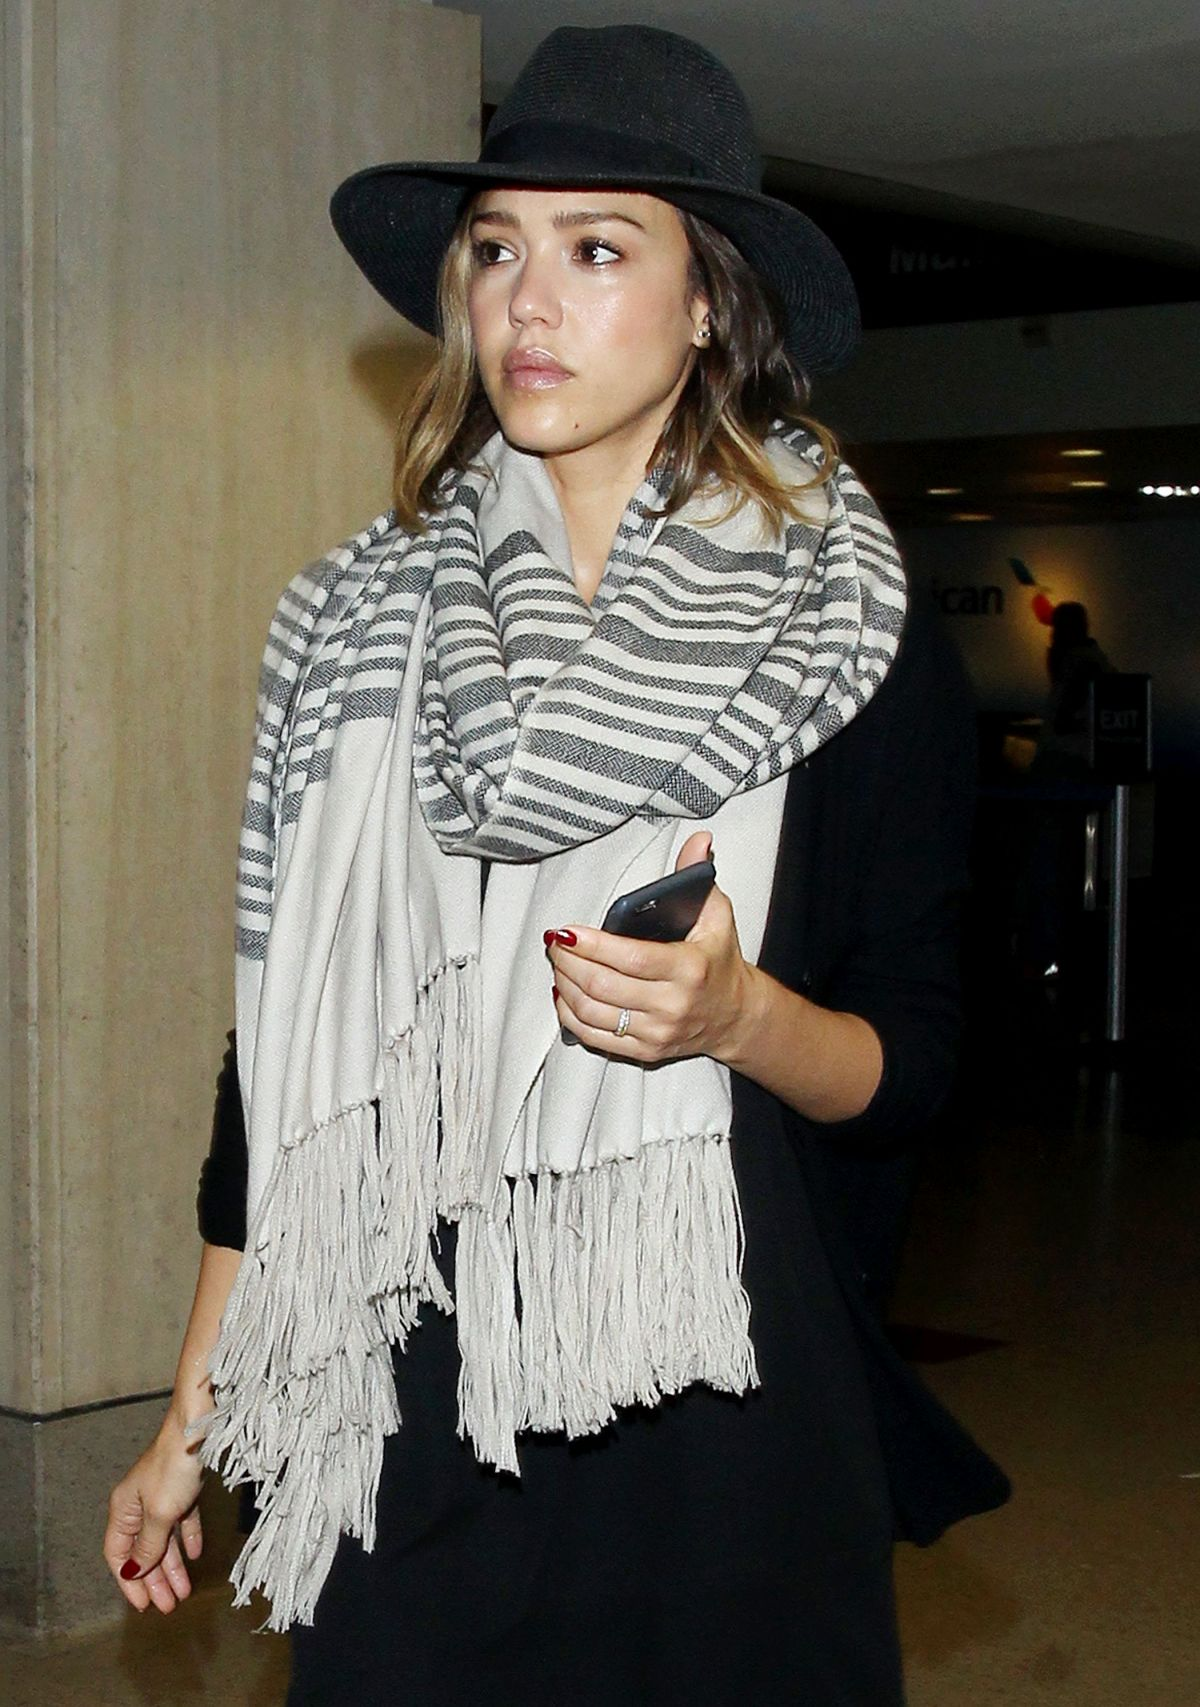 JESSICA ALBA at LAX Airport in Los Angeles 06/12/2015